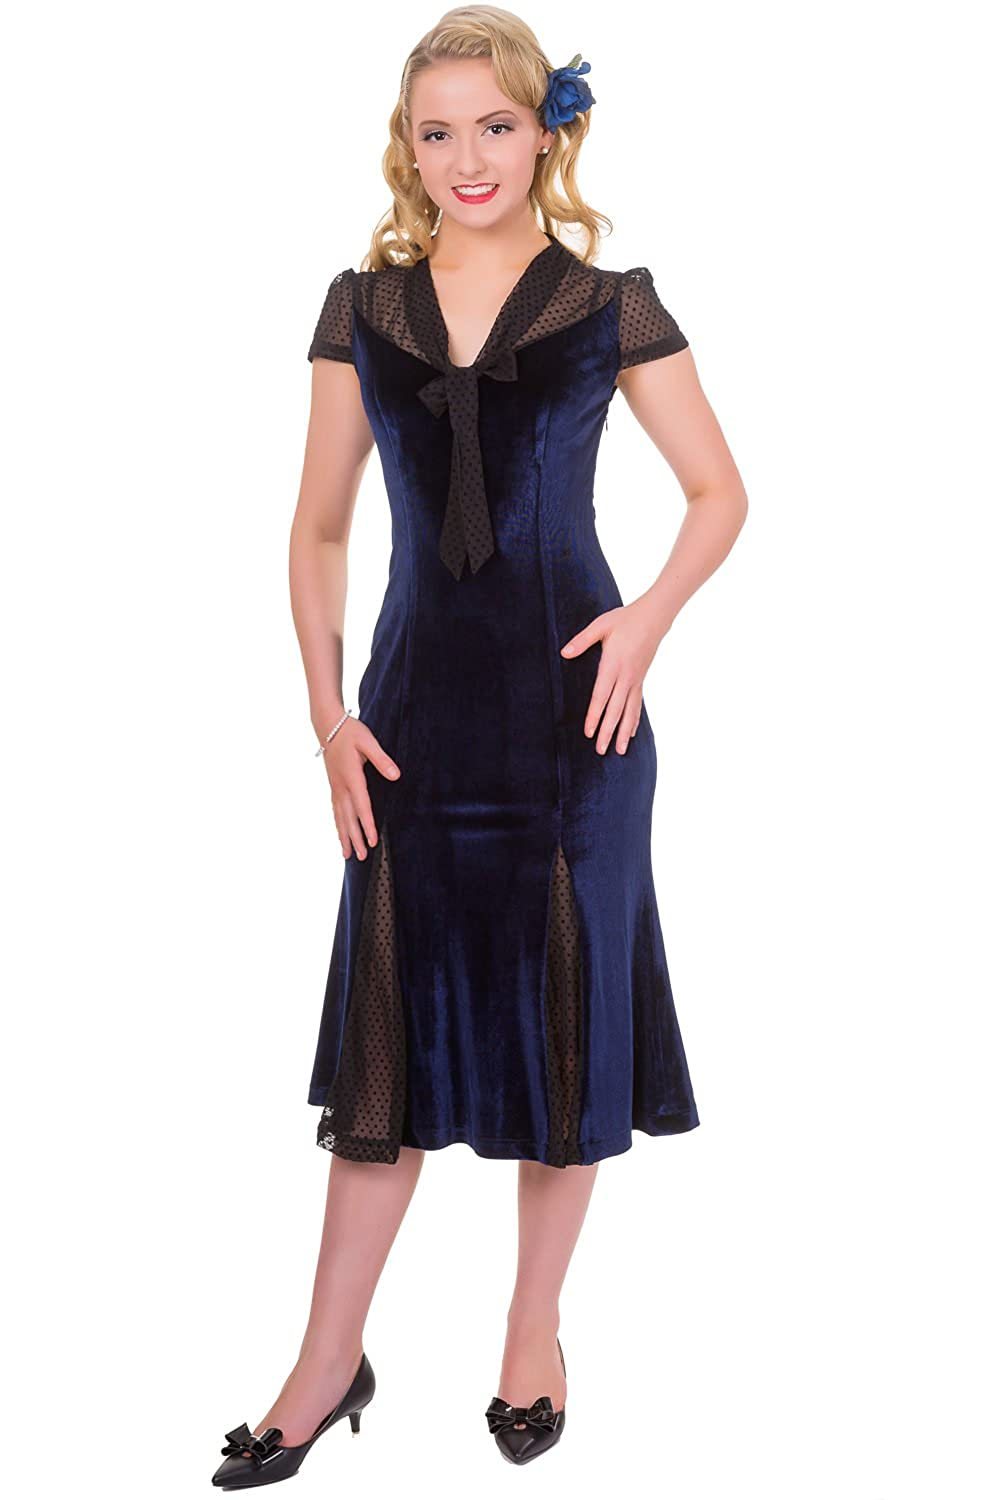 1920s Style Dresses, Flapper Dresses Banned Sensation Dress $69.95 AT vintagedancer.com